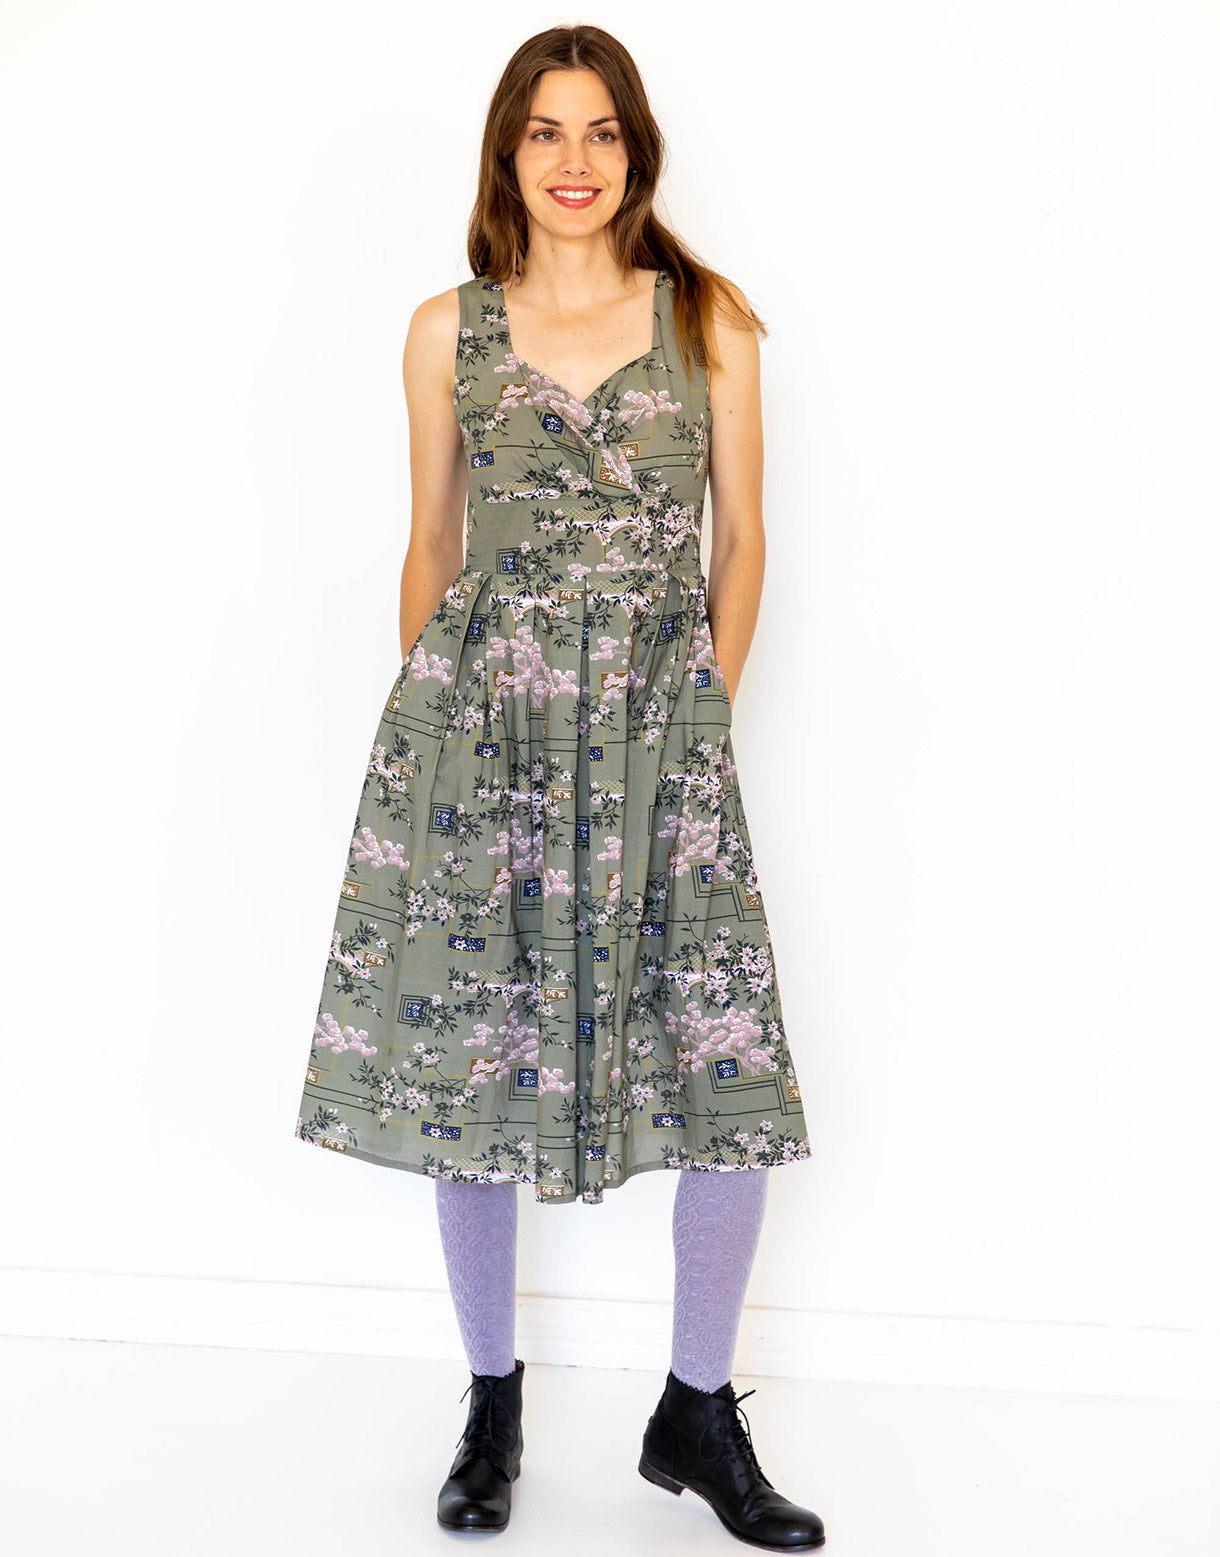 Alice Dress in Sakura *organic cotton